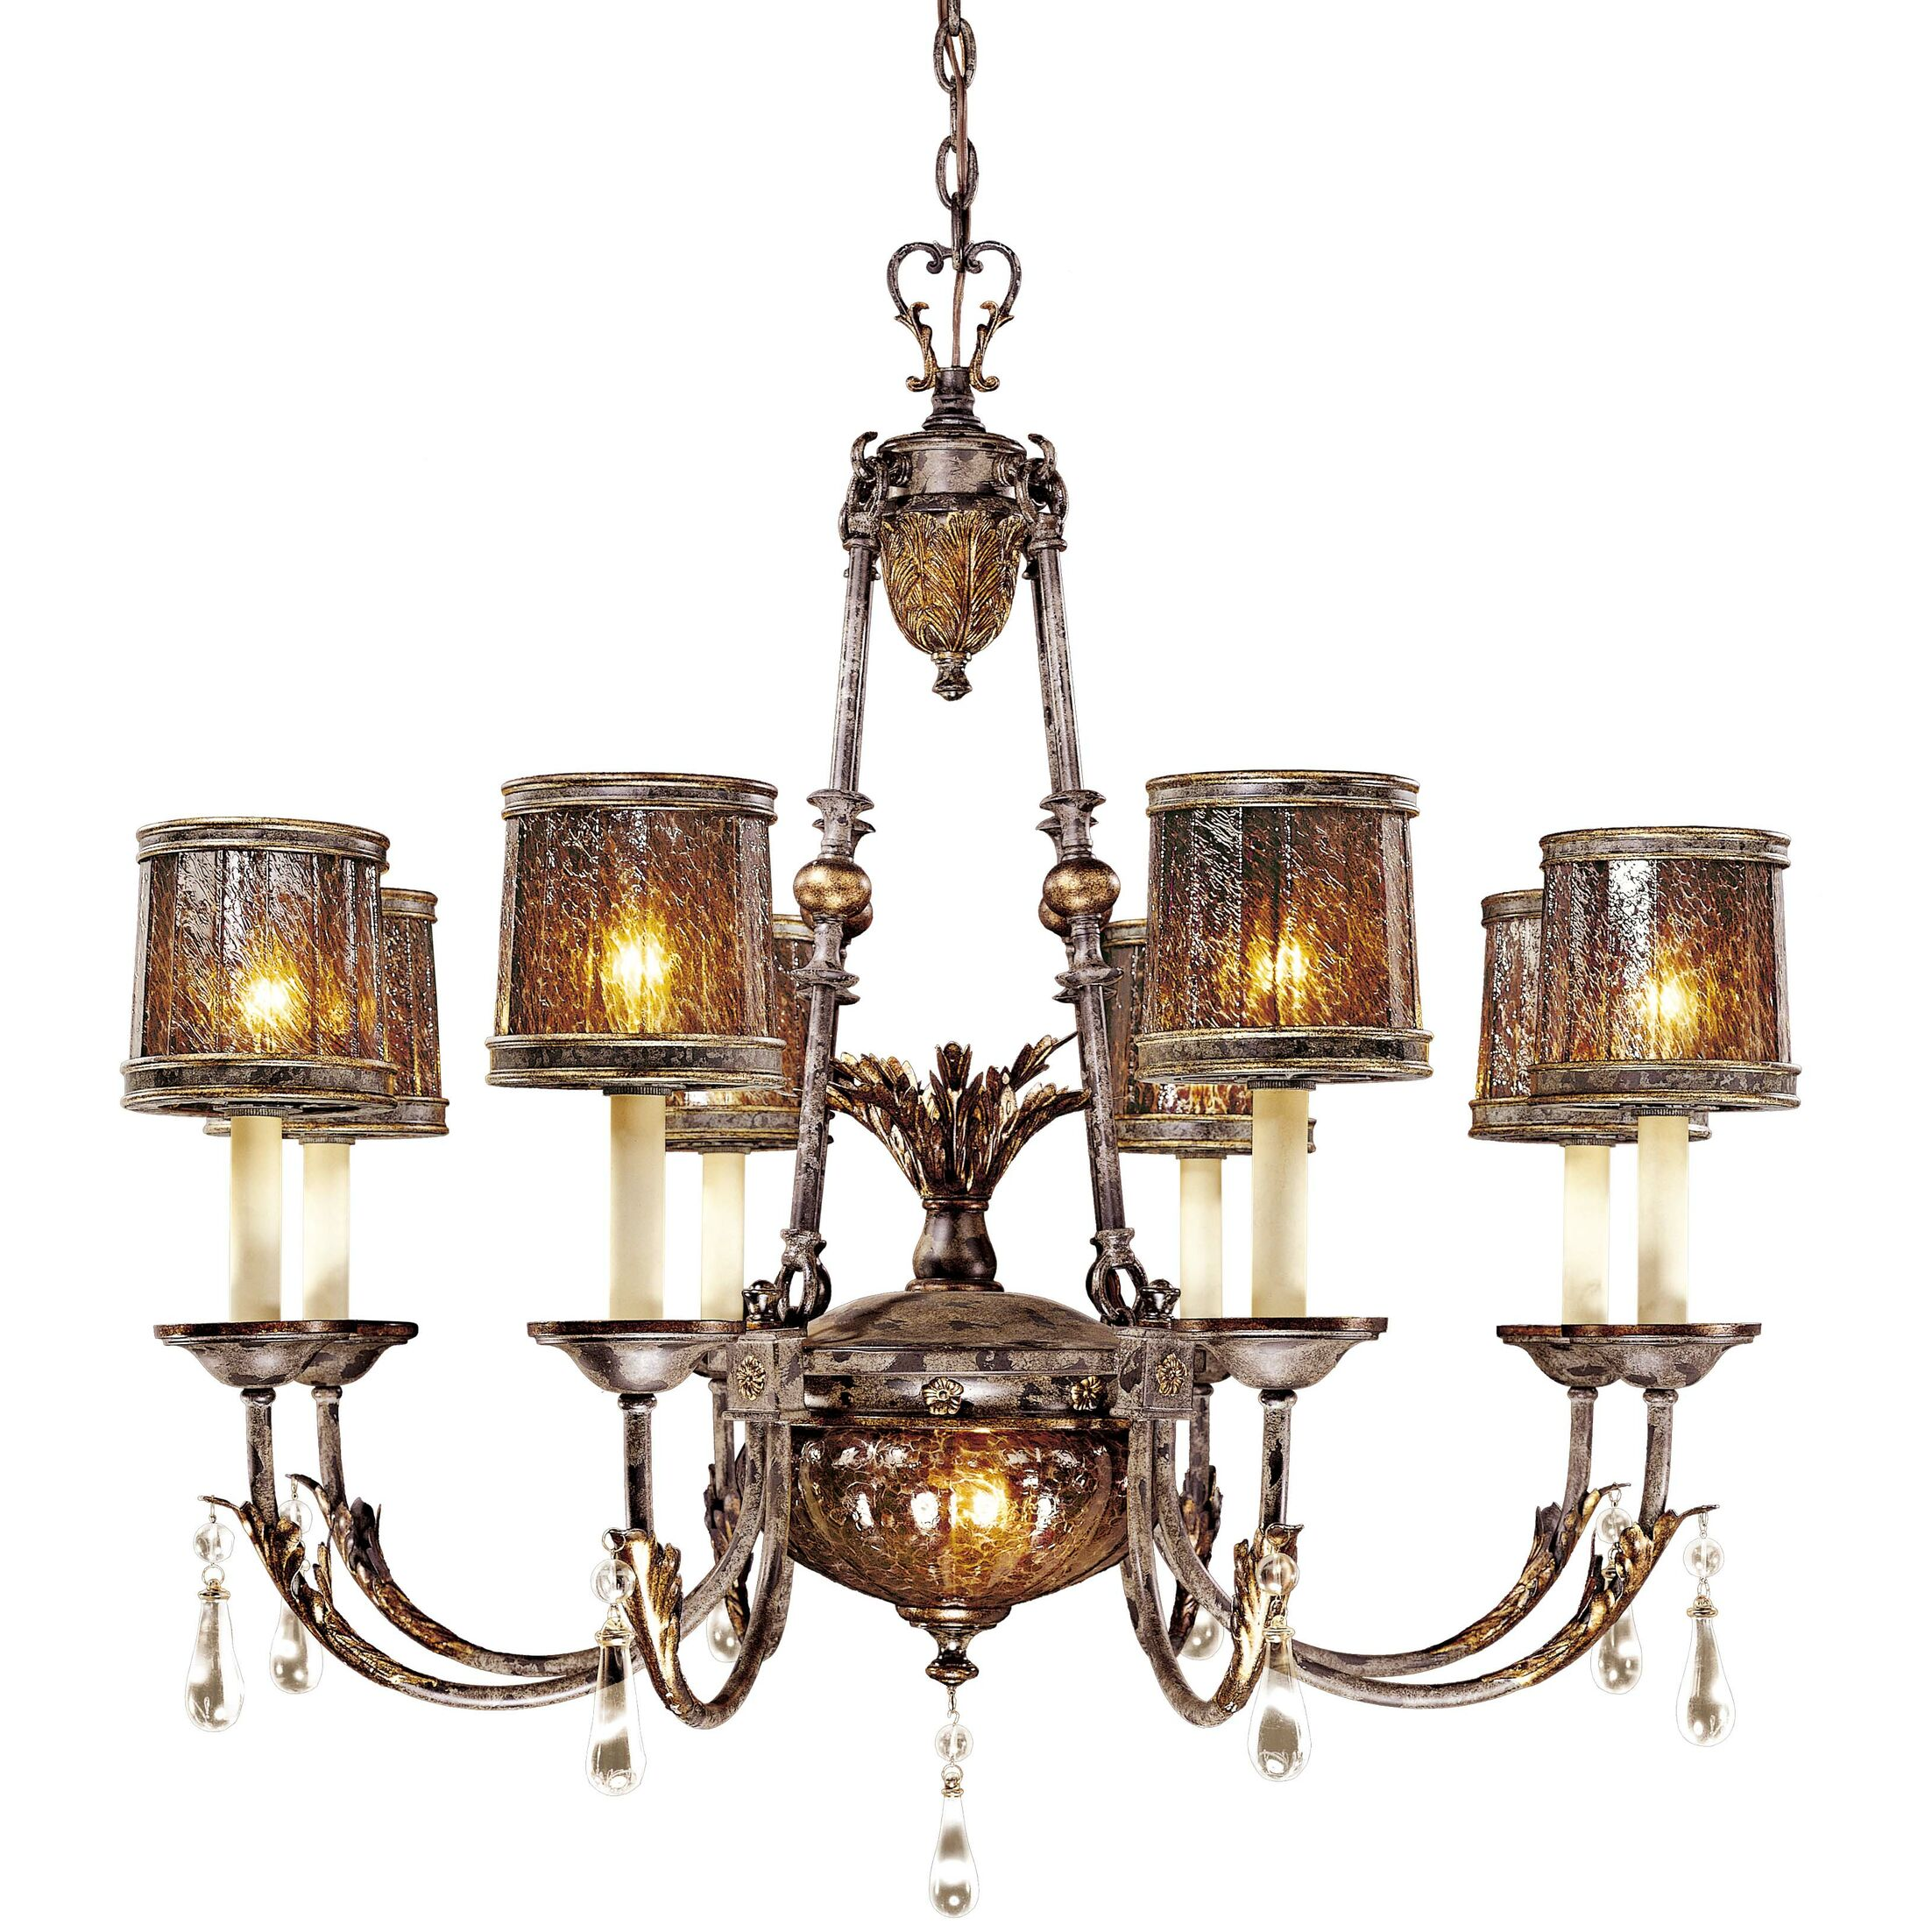 Sanguesa 9-Light Shaded Chandelier